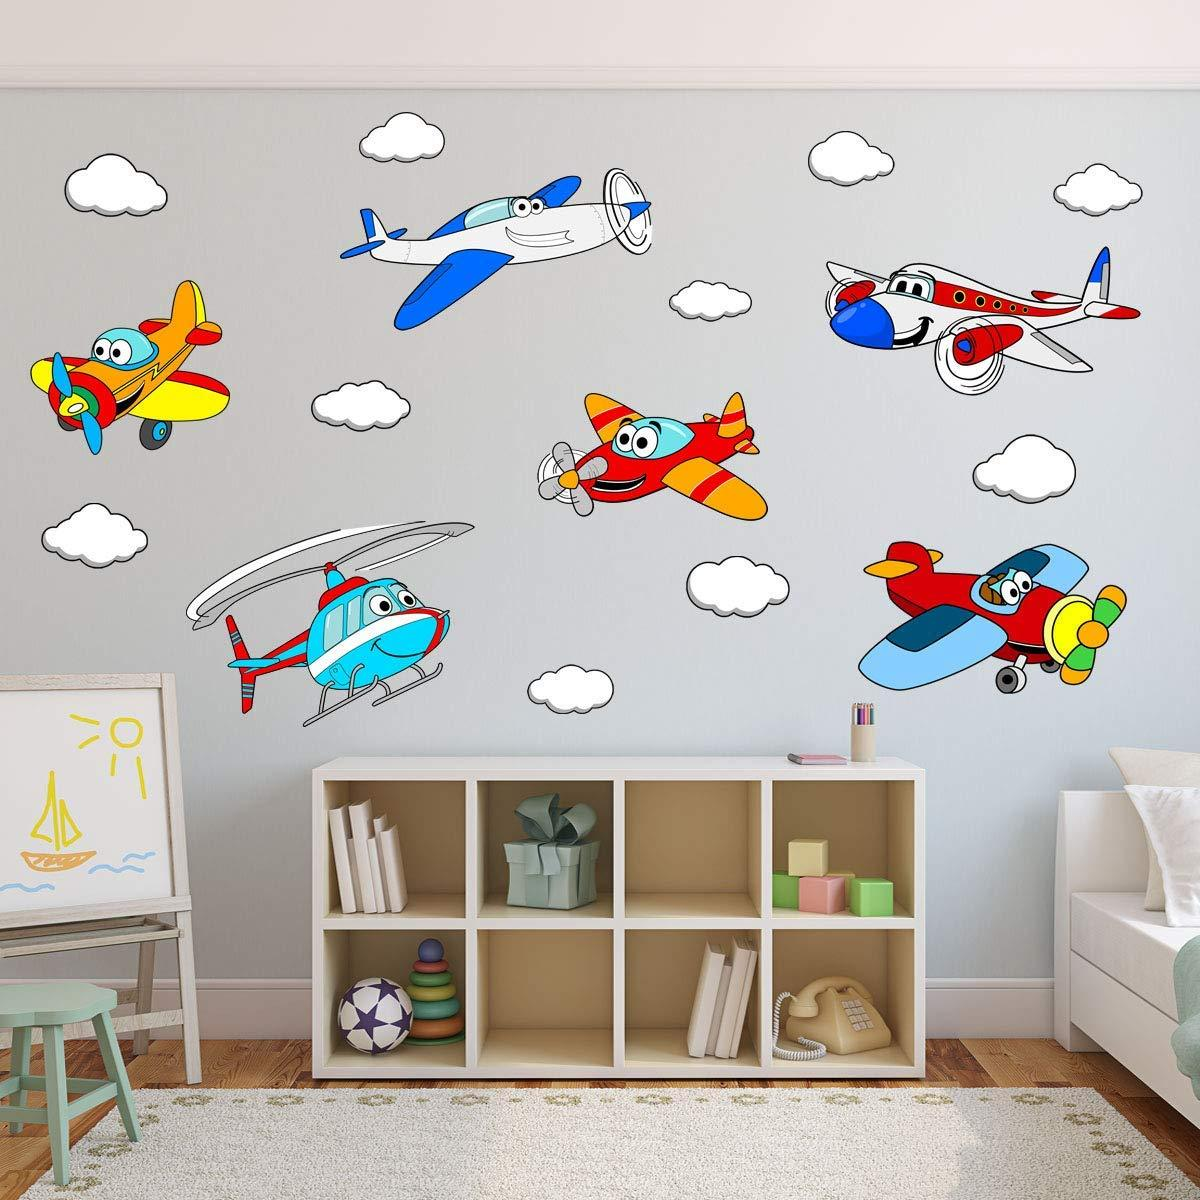 VWAQ Kids Airplane Wall Decals Peel and Stick Aviation Vinyl Stickers Nursery Decor - PAS31 - VWAQ Vinyl Wall Art Quotes and Prints